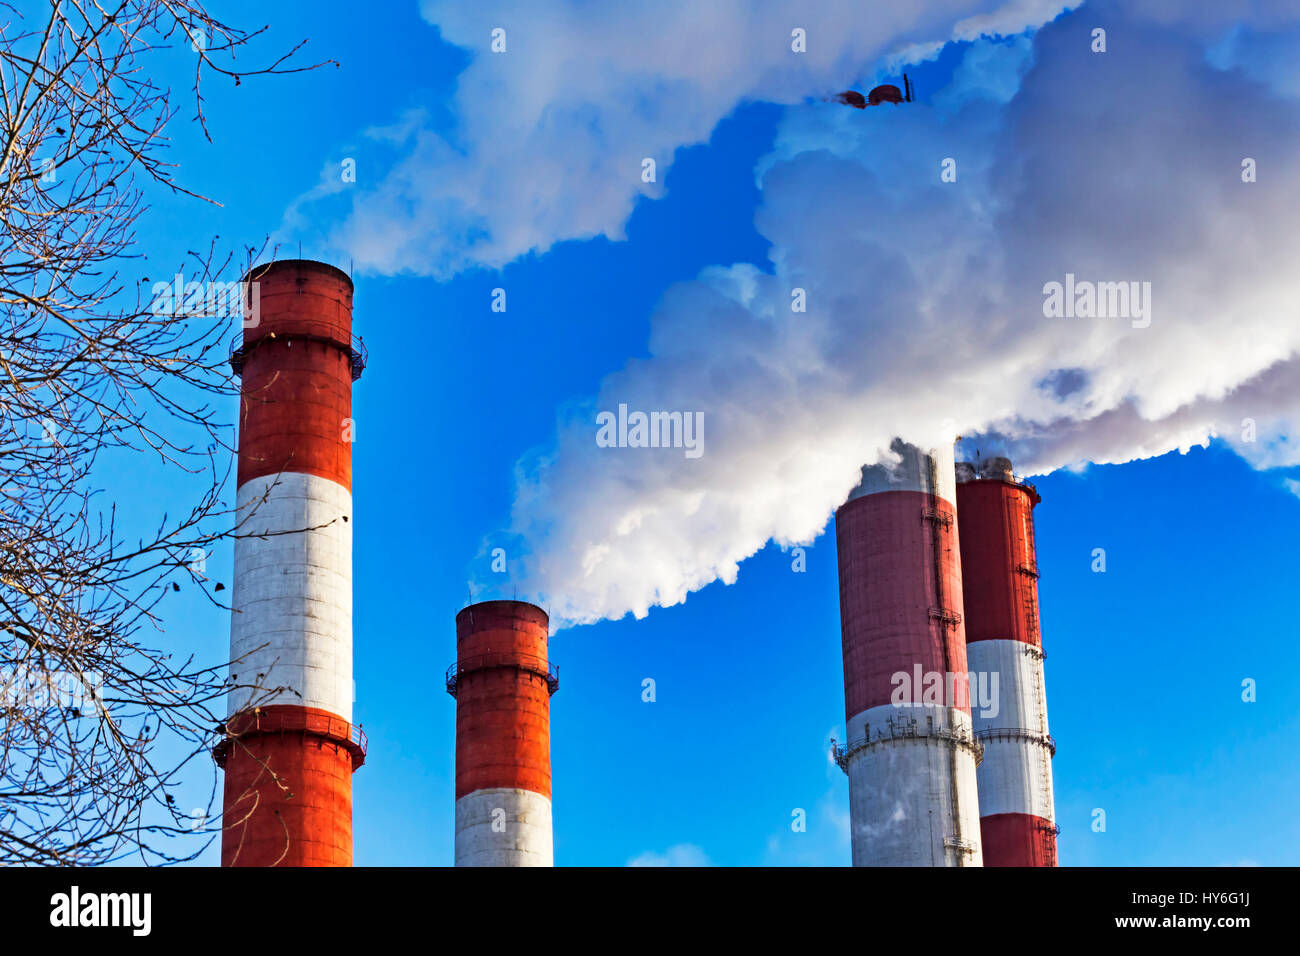 Chimneys with steam production of a thermal power station - Stock Image